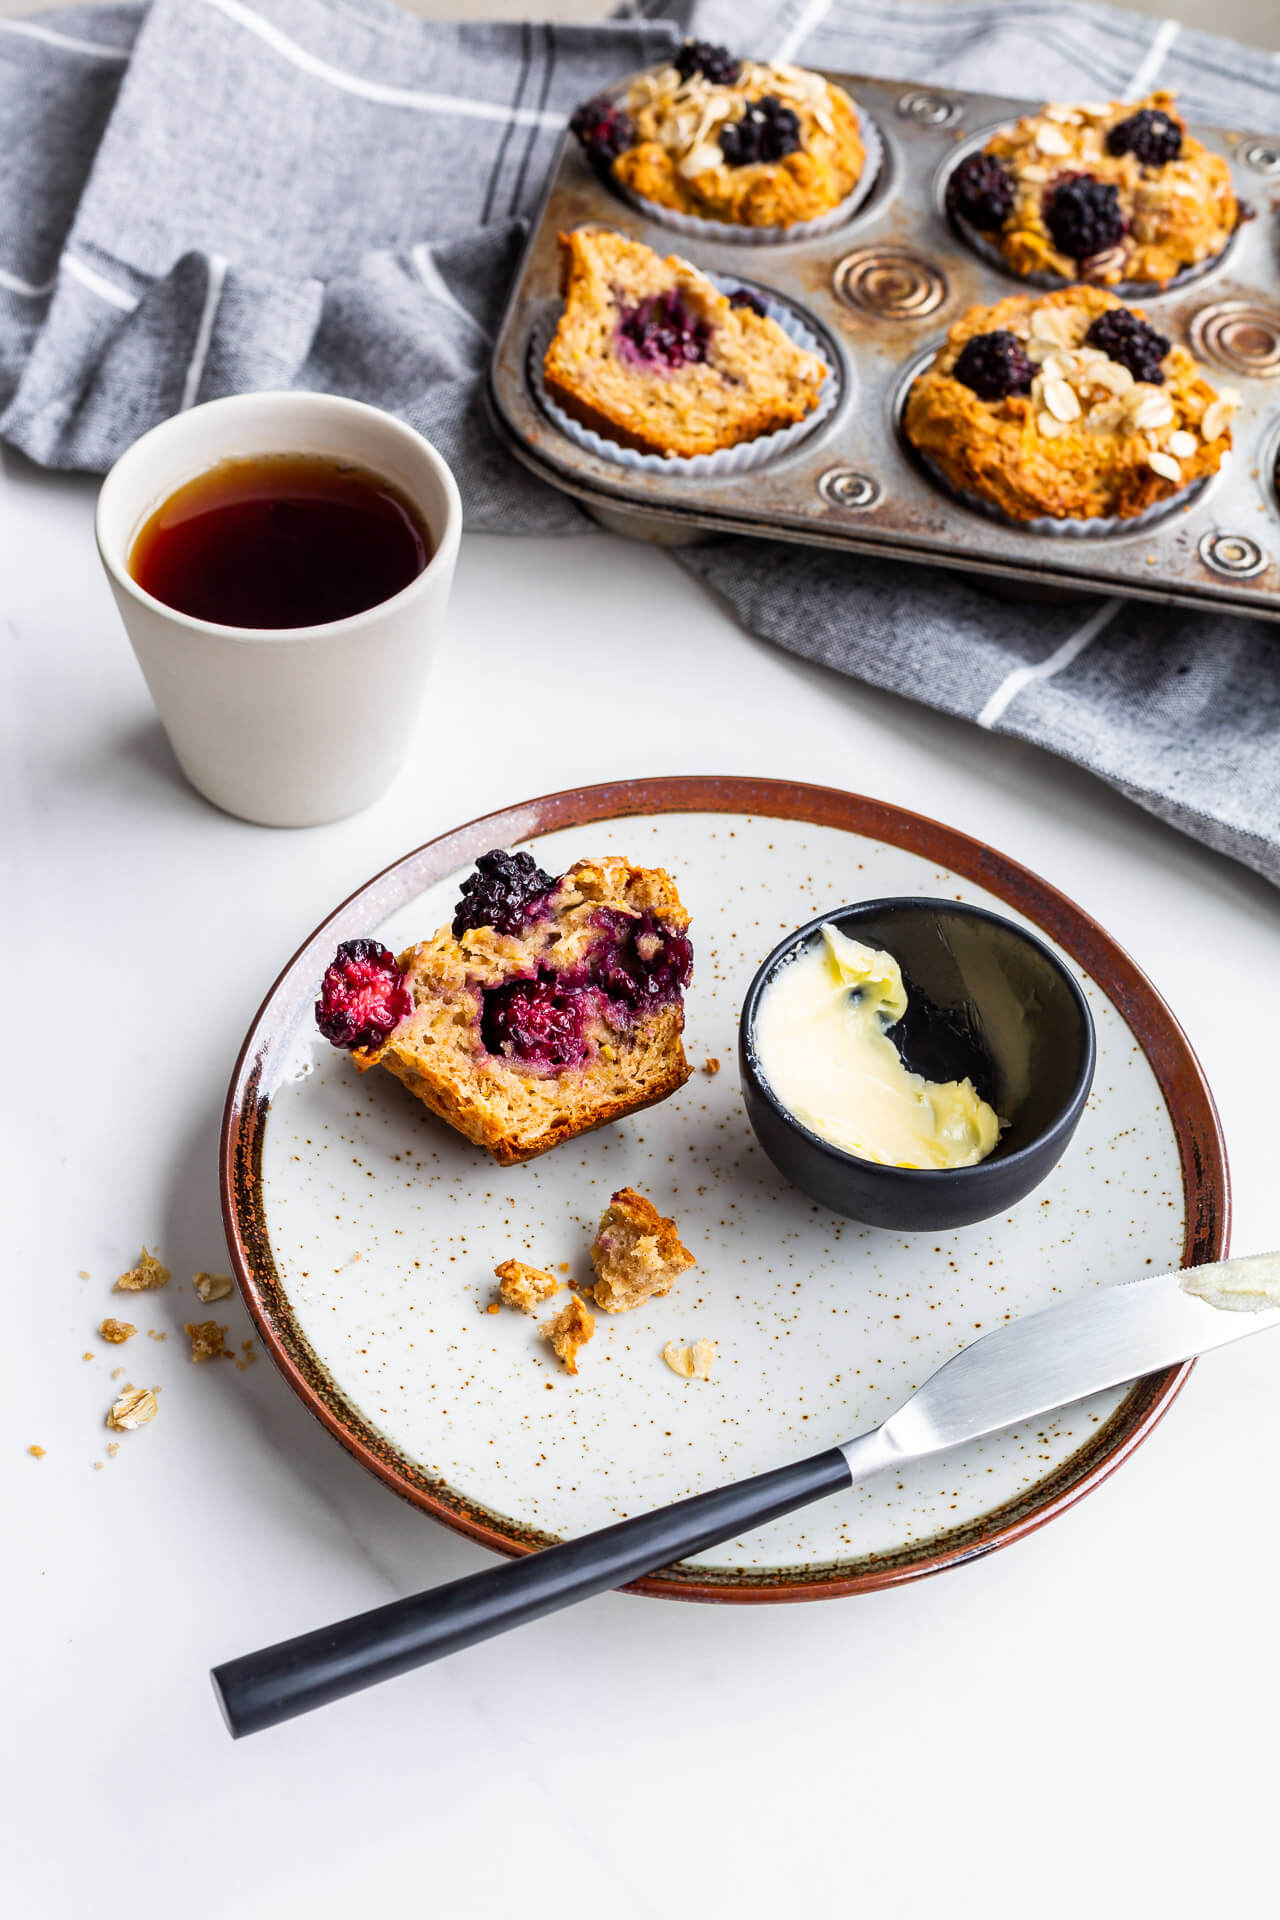 Hearty apple blackberry muffins with oats, one split open on a plate with butter and a knife, served with black tea